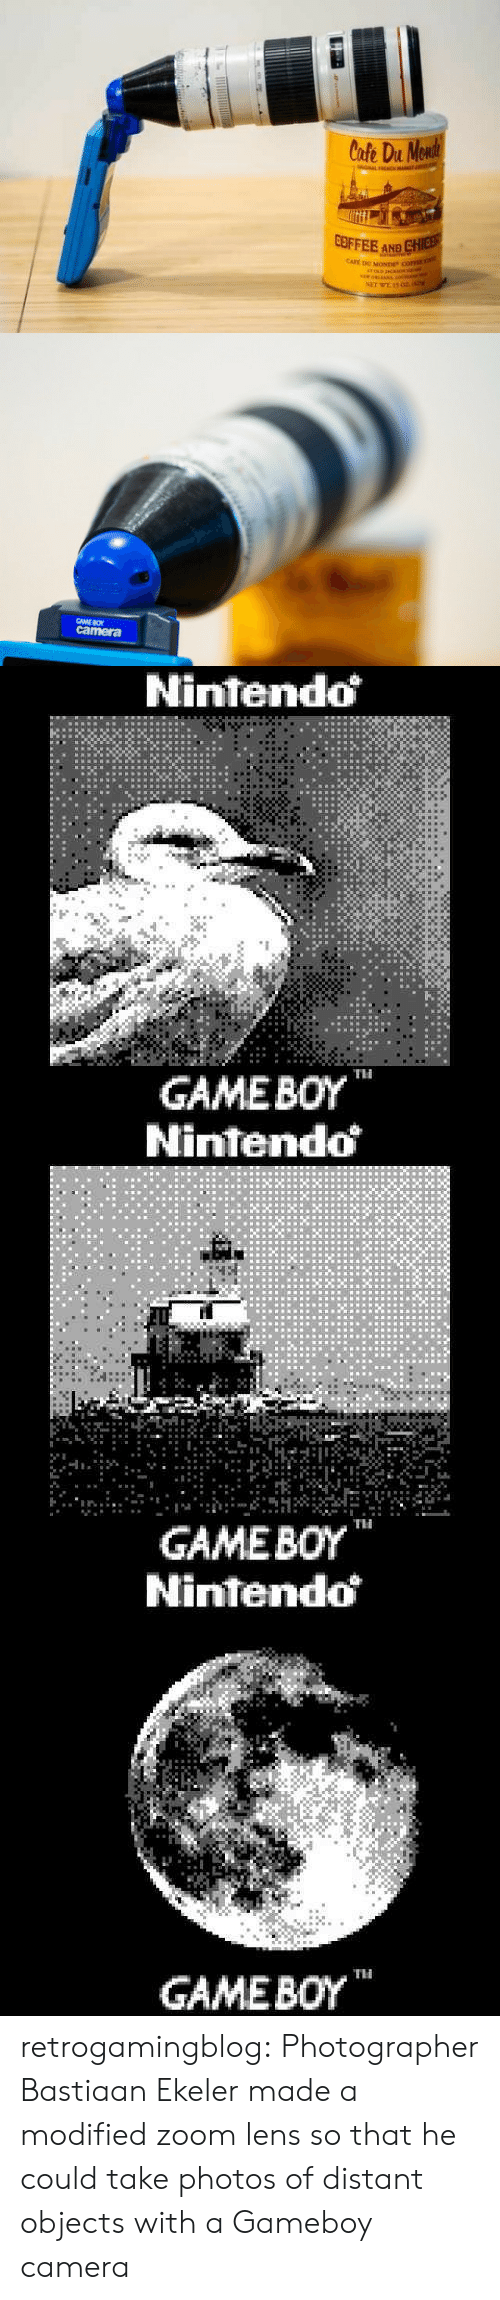 "Nintendo, Tumblr, and Zoom: Cofe Du Monde  GAL FH  COFFEE AND CHIEB  CAFE DU MONDE"" COFEE  ATOLD JHCEo  sew 0LAANS Ioin  NET WE 15 02z.i   GAME BO  camera   Nintendo  GAMEBOY  TH   Nintendo  GAMEBOY  Ti   Nintendo  GAME BOY retrogamingblog:   Photographer Bastiaan Ekeler made a modified zoom lens so that he could take photos of distant objects with a Gameboy camera"